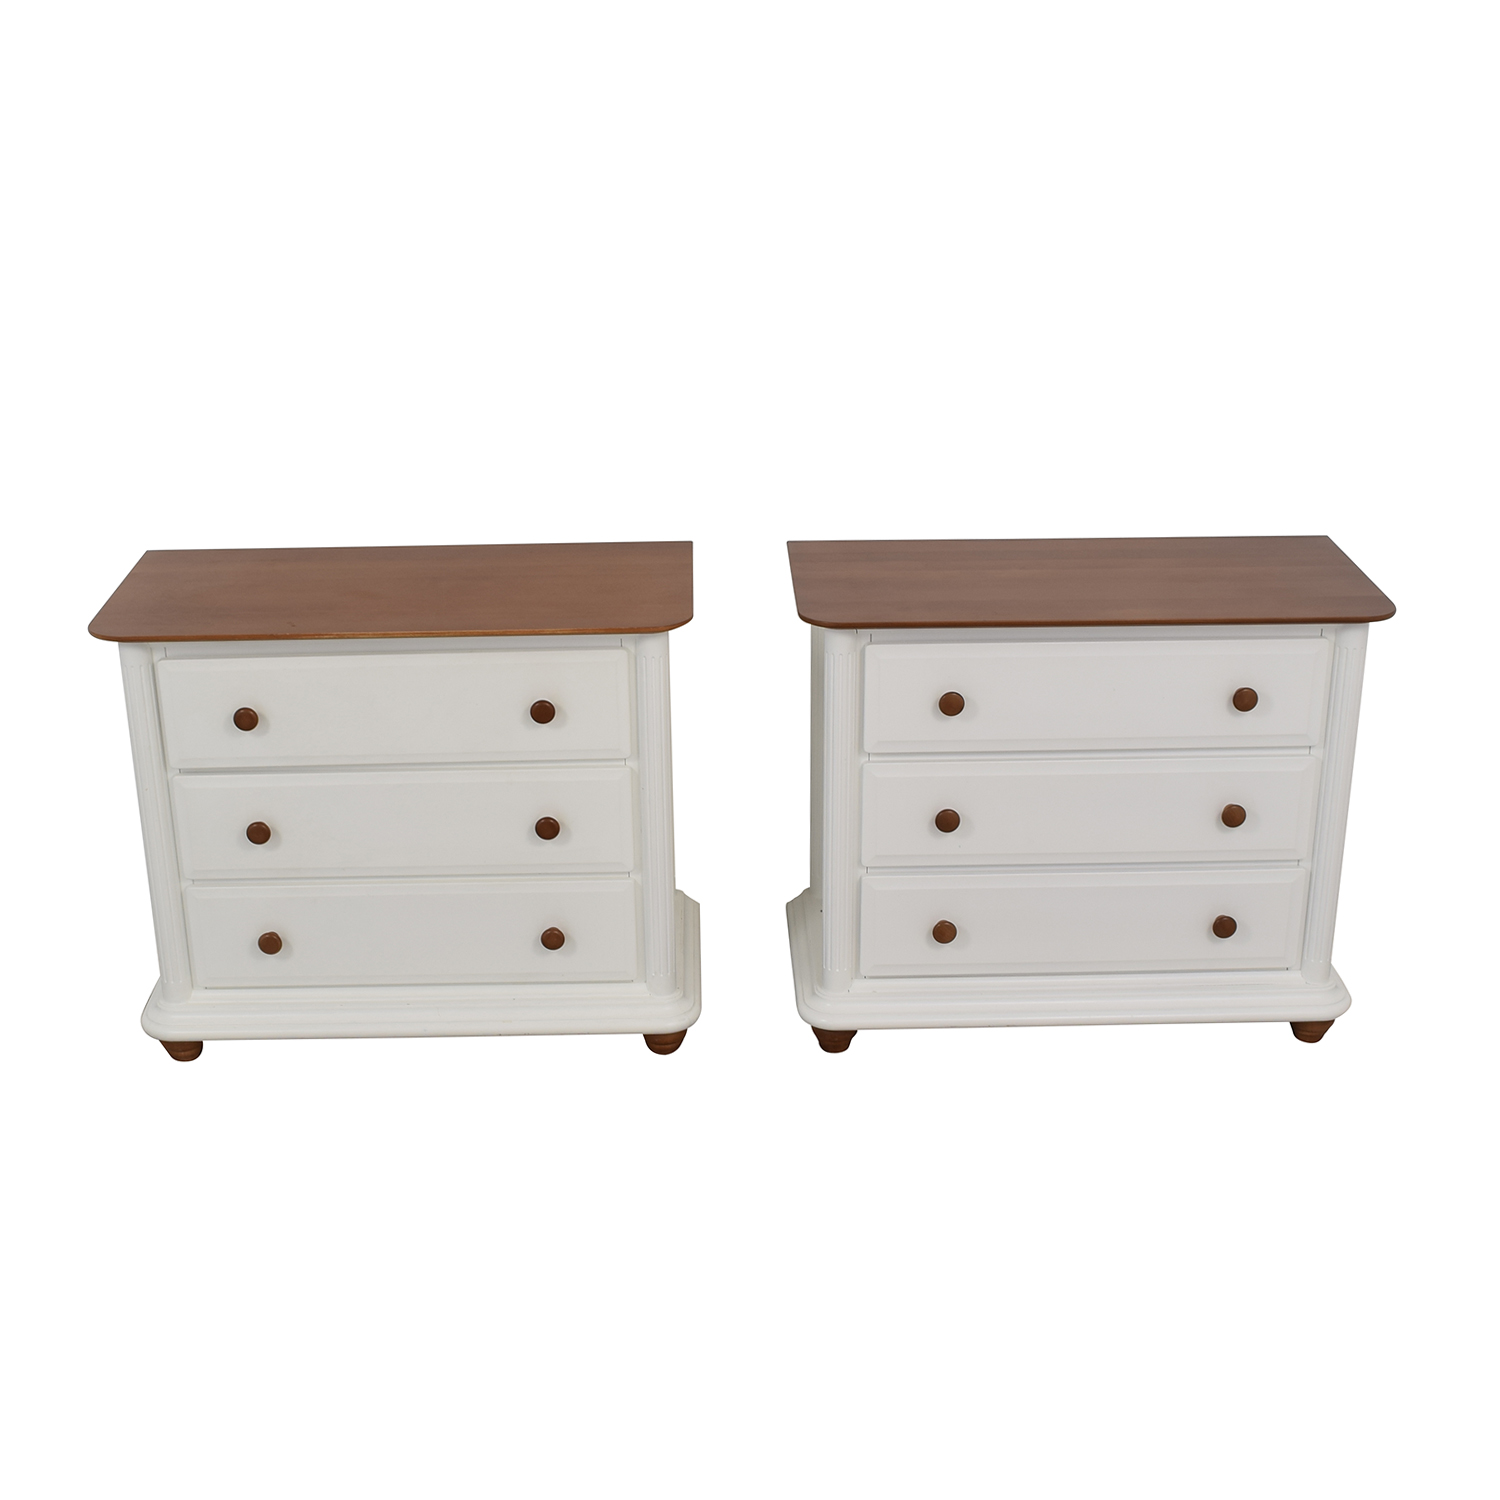 Romina Romina Verona White Three-Drawer Dressers nyc